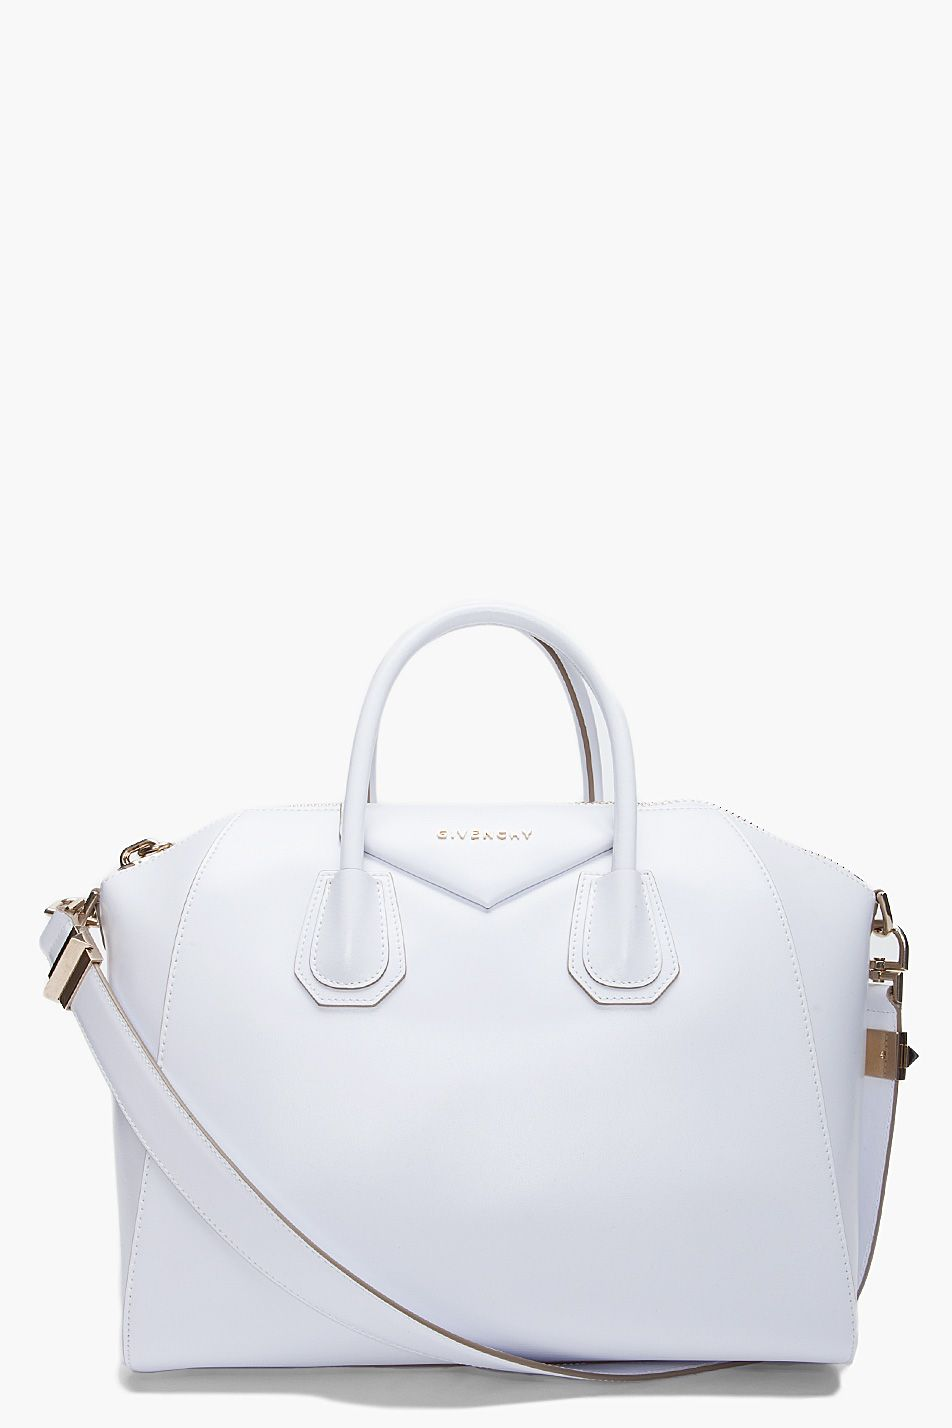 Givenchy White Medium Antigona tote - A white whimsical dream ... 7a2b76e91409d